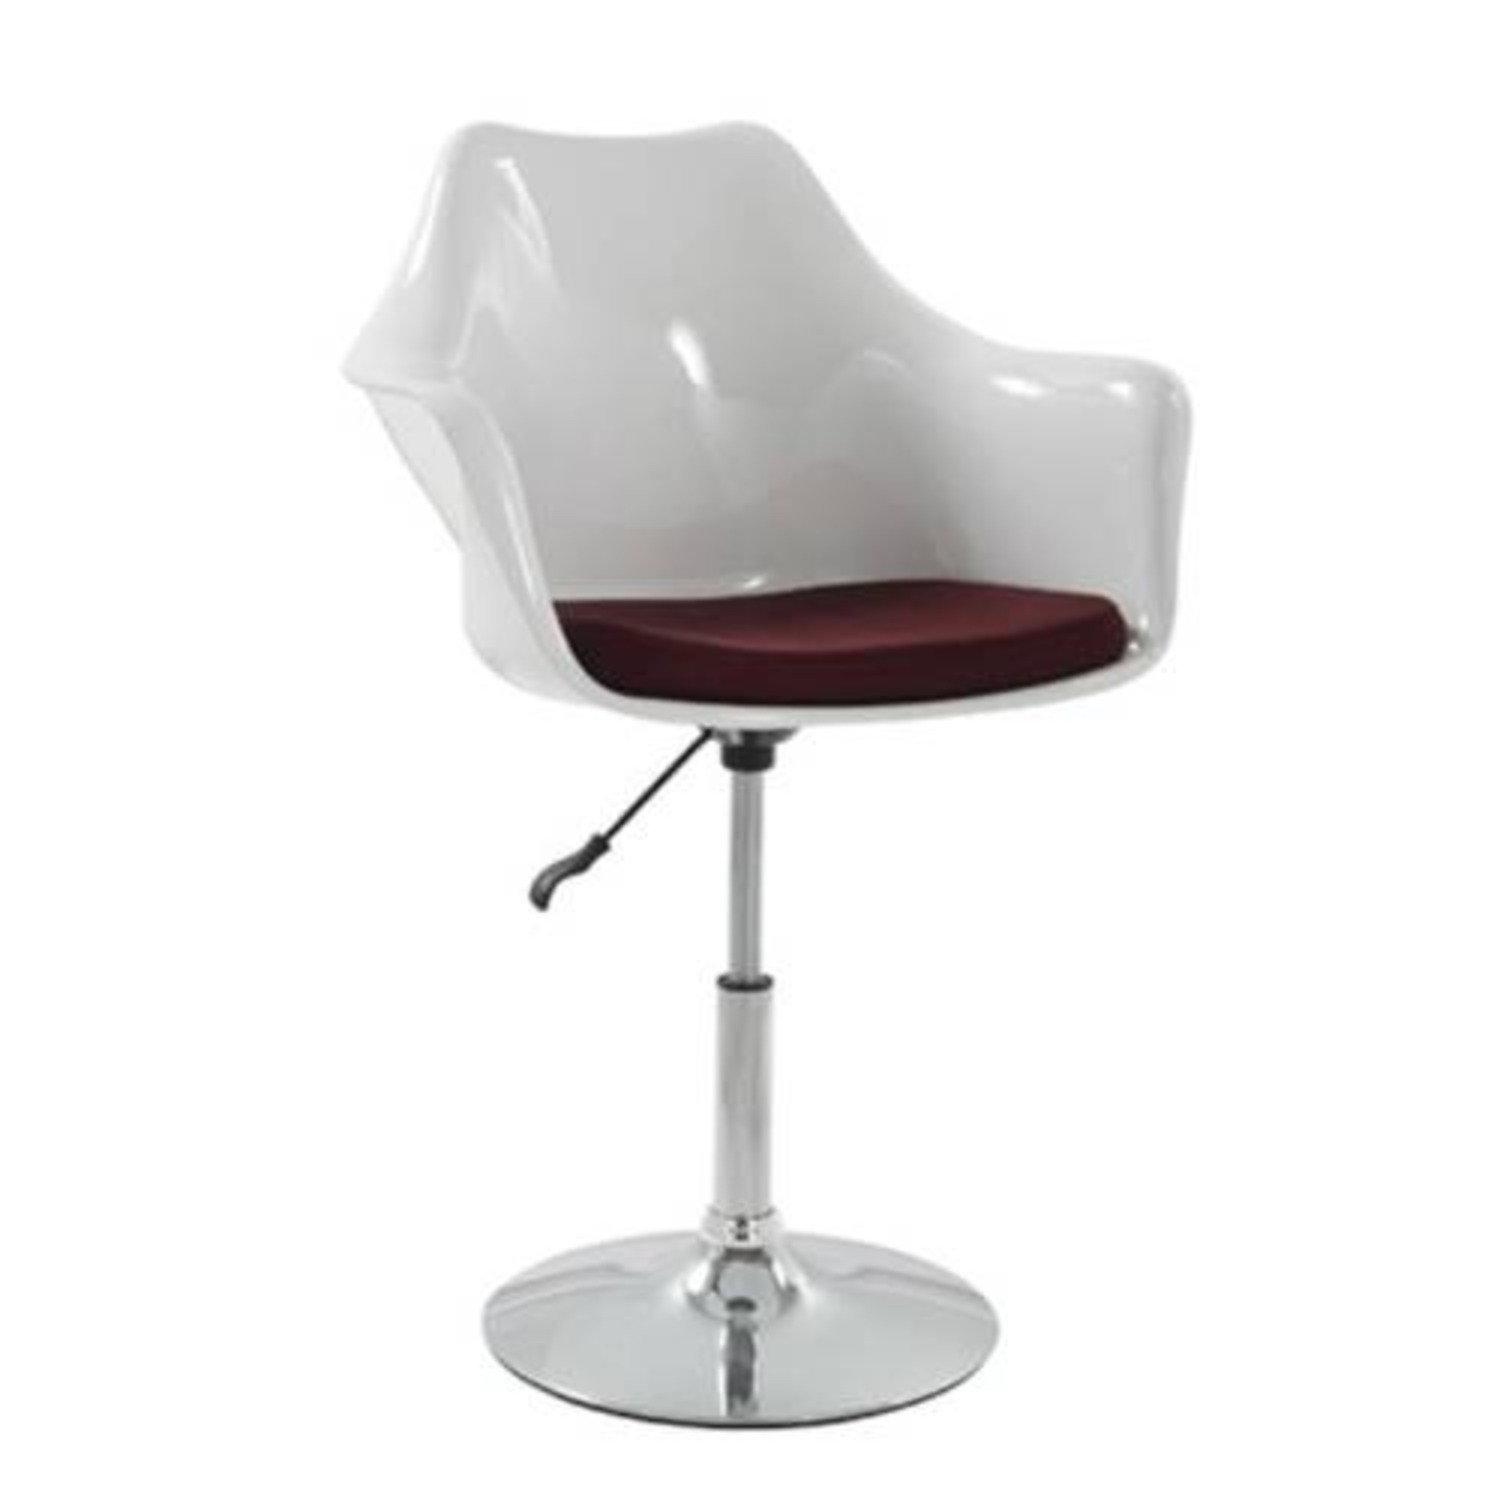 Height-Adjustable Swivel Arm Chair In White ABS - image-1